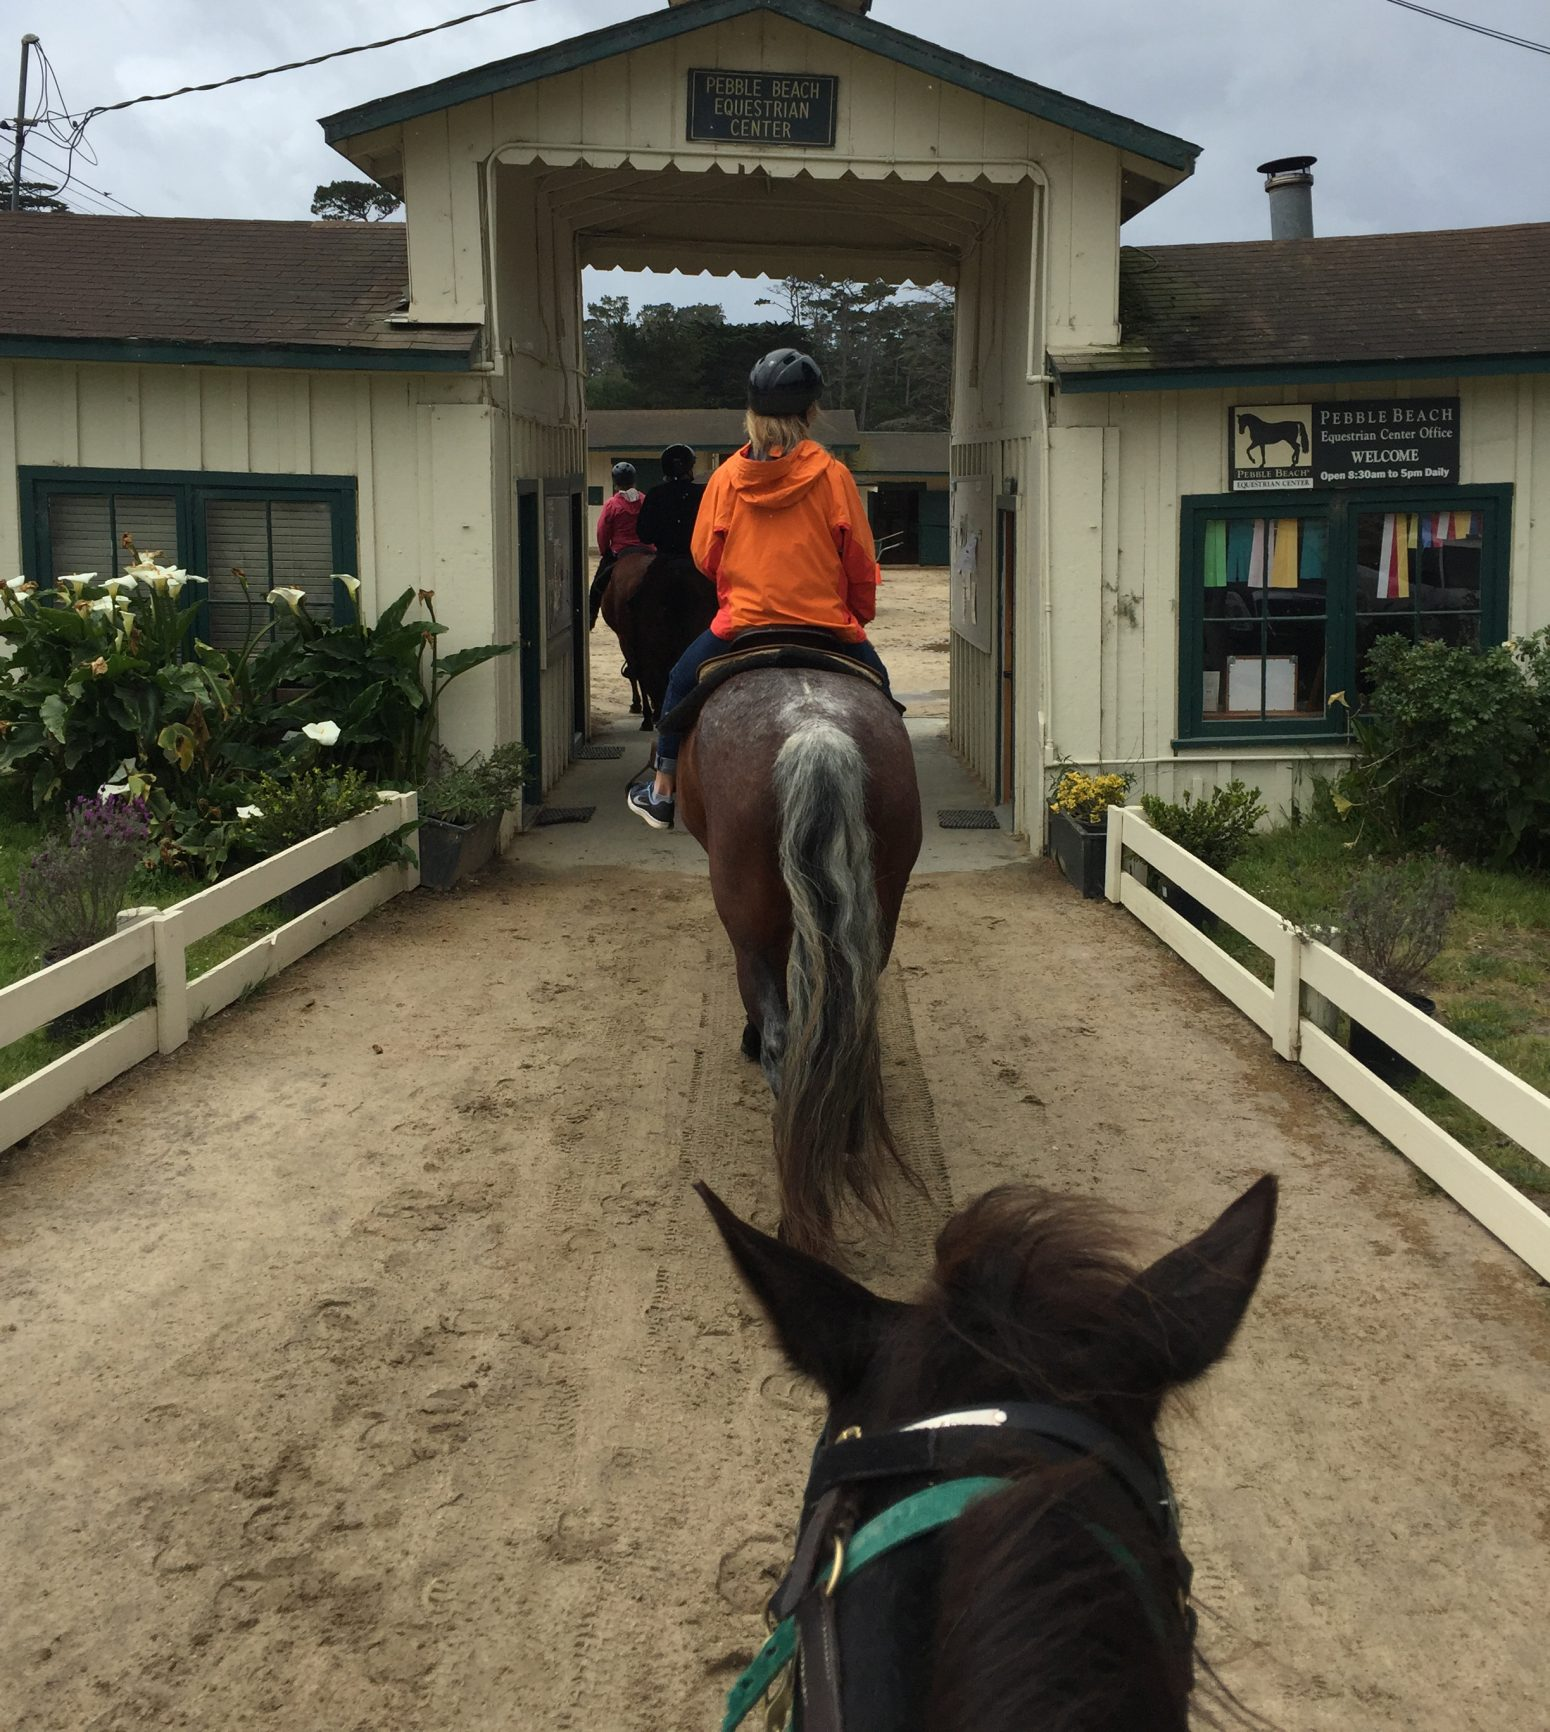 Pebble Beach Equestrian Center on 17-Mile Drive